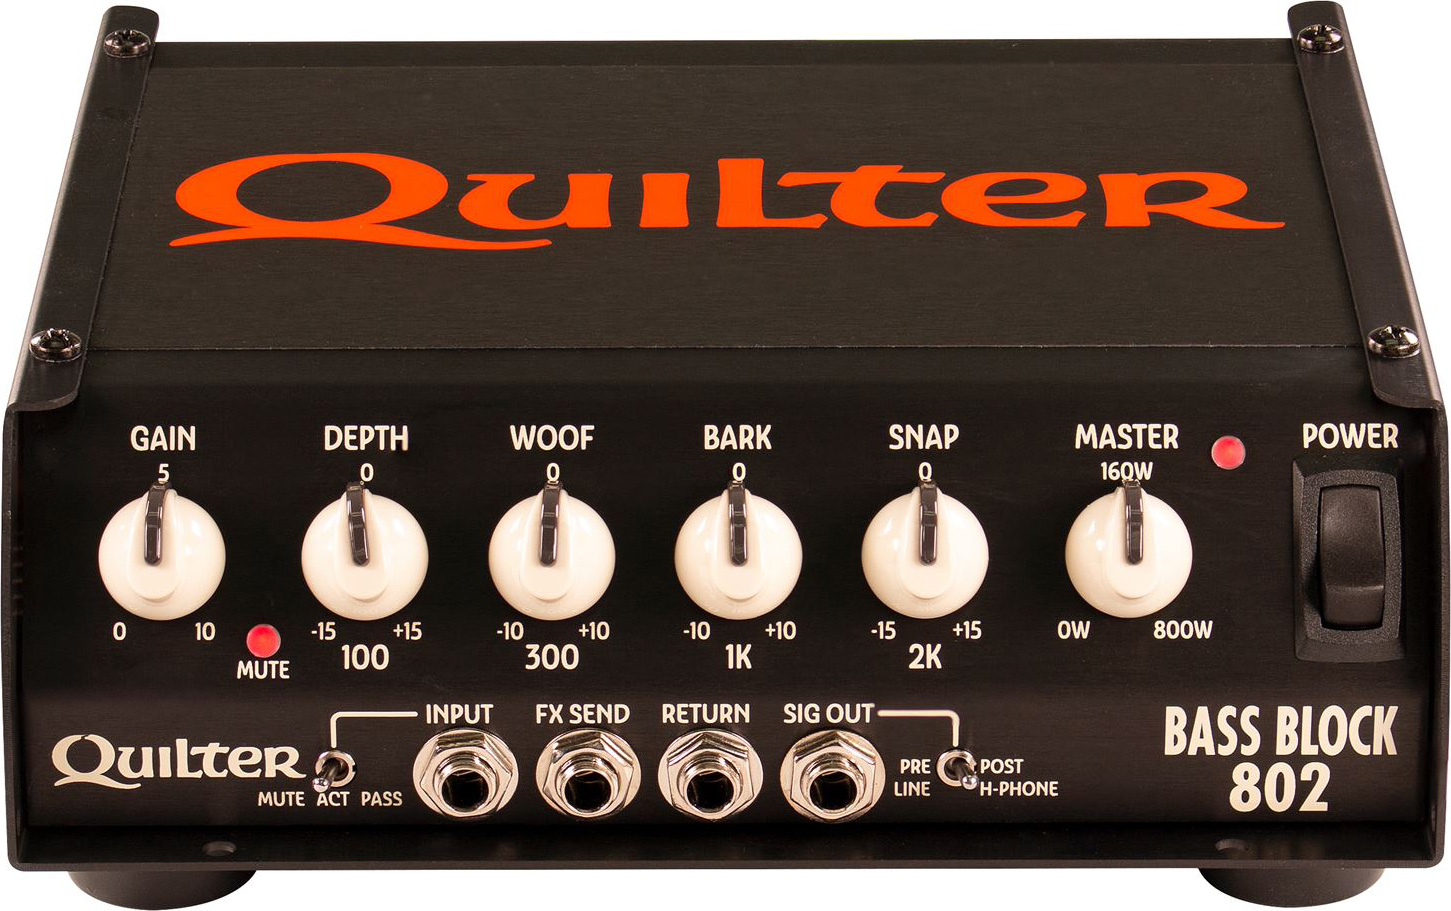 Quilter Bass Block 802 Amp